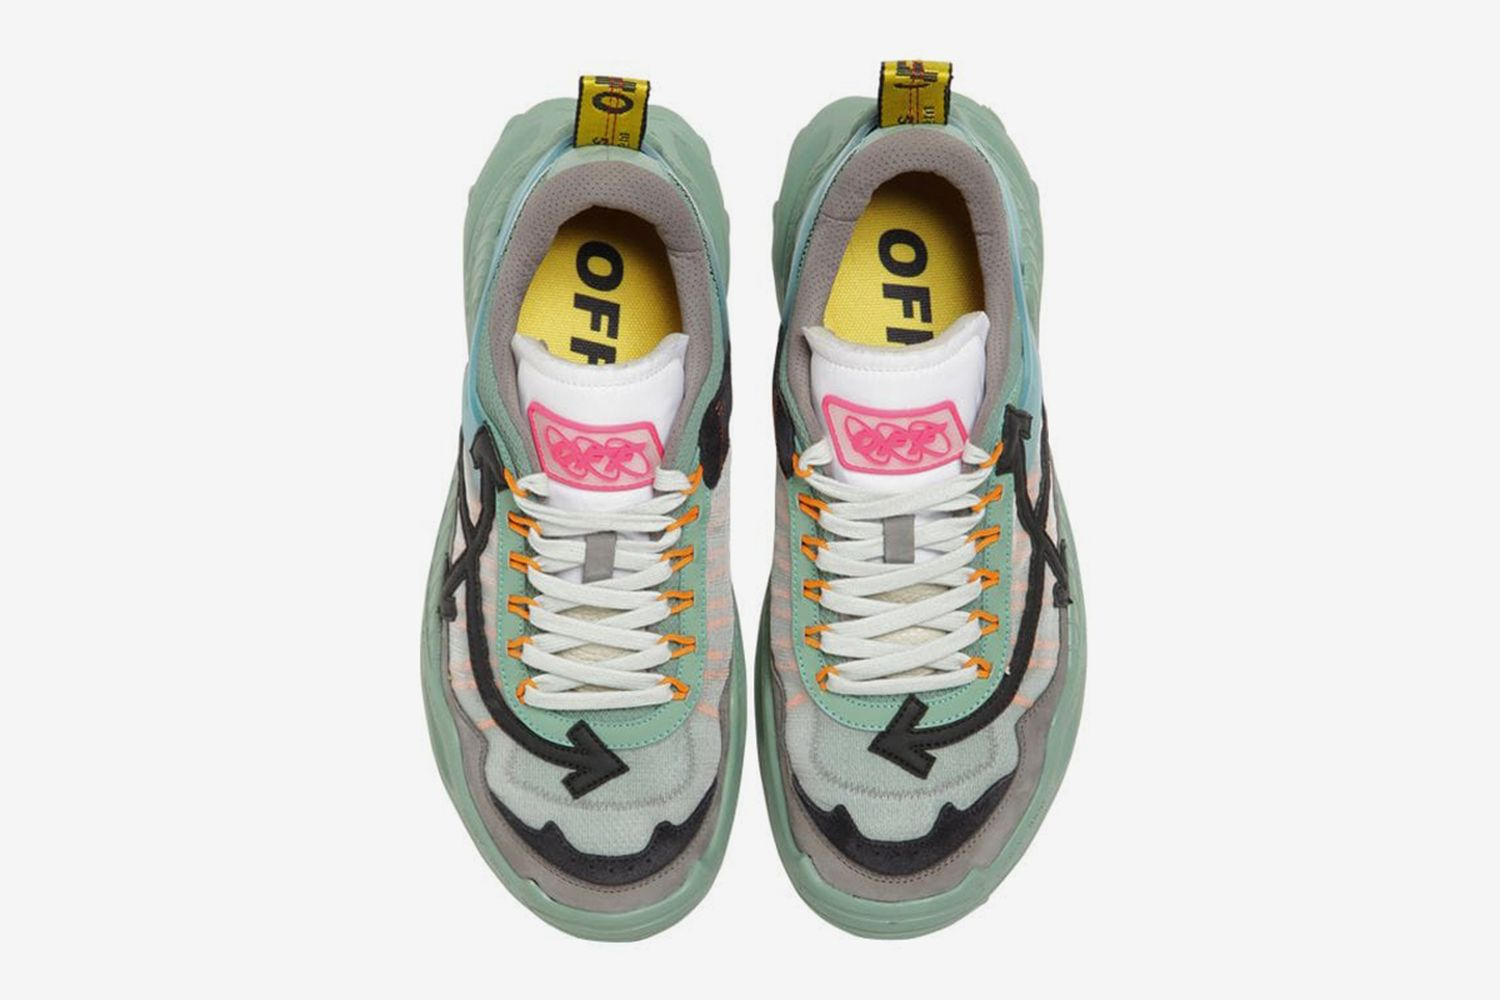 Odsy Low Top Sneakers